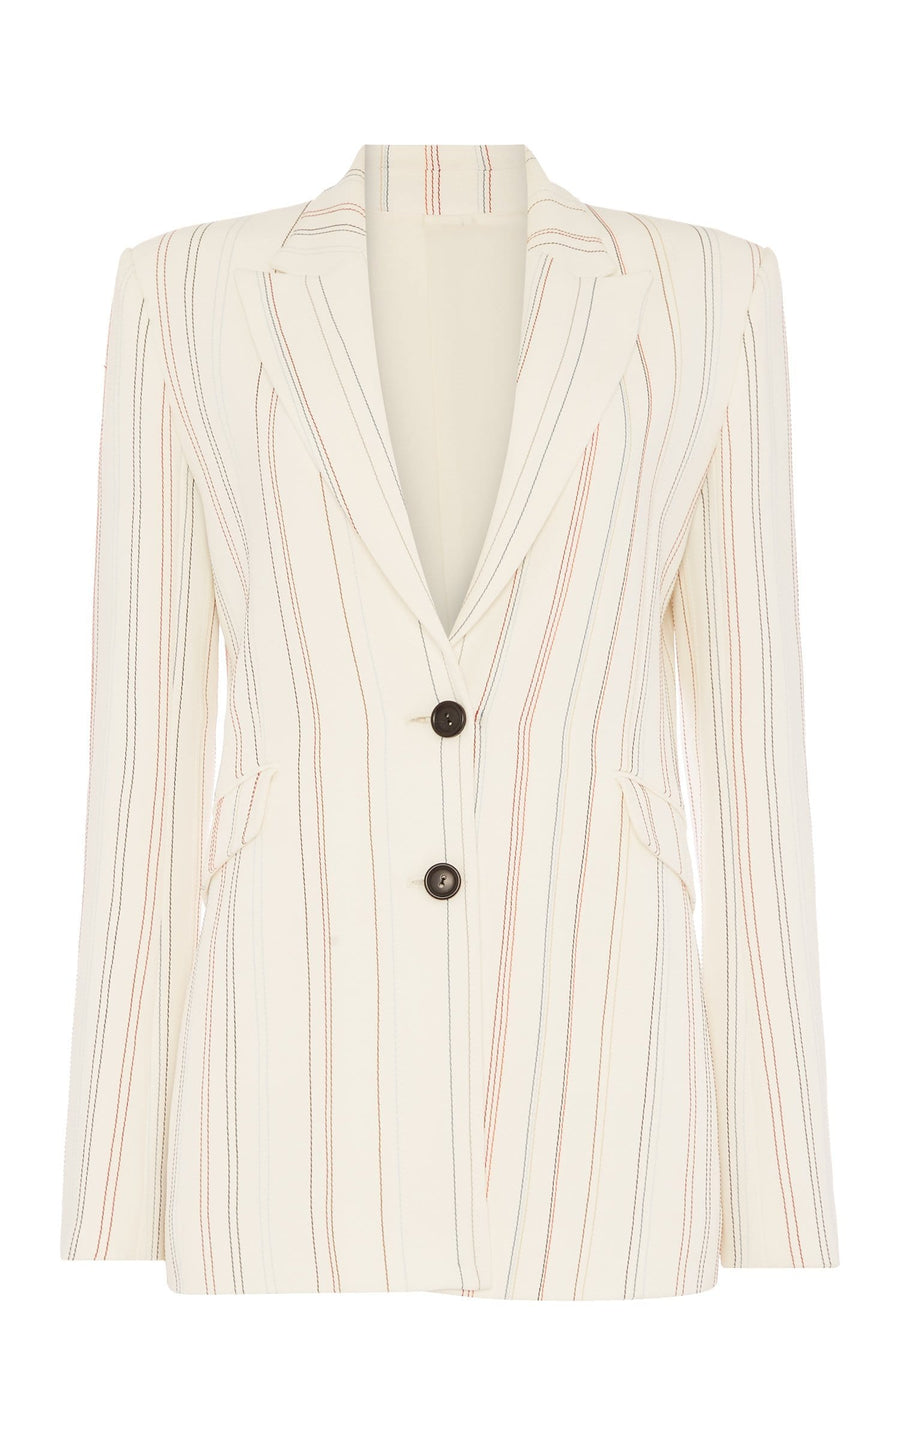 Neyman Jacket In White Multi from Roland Mouret